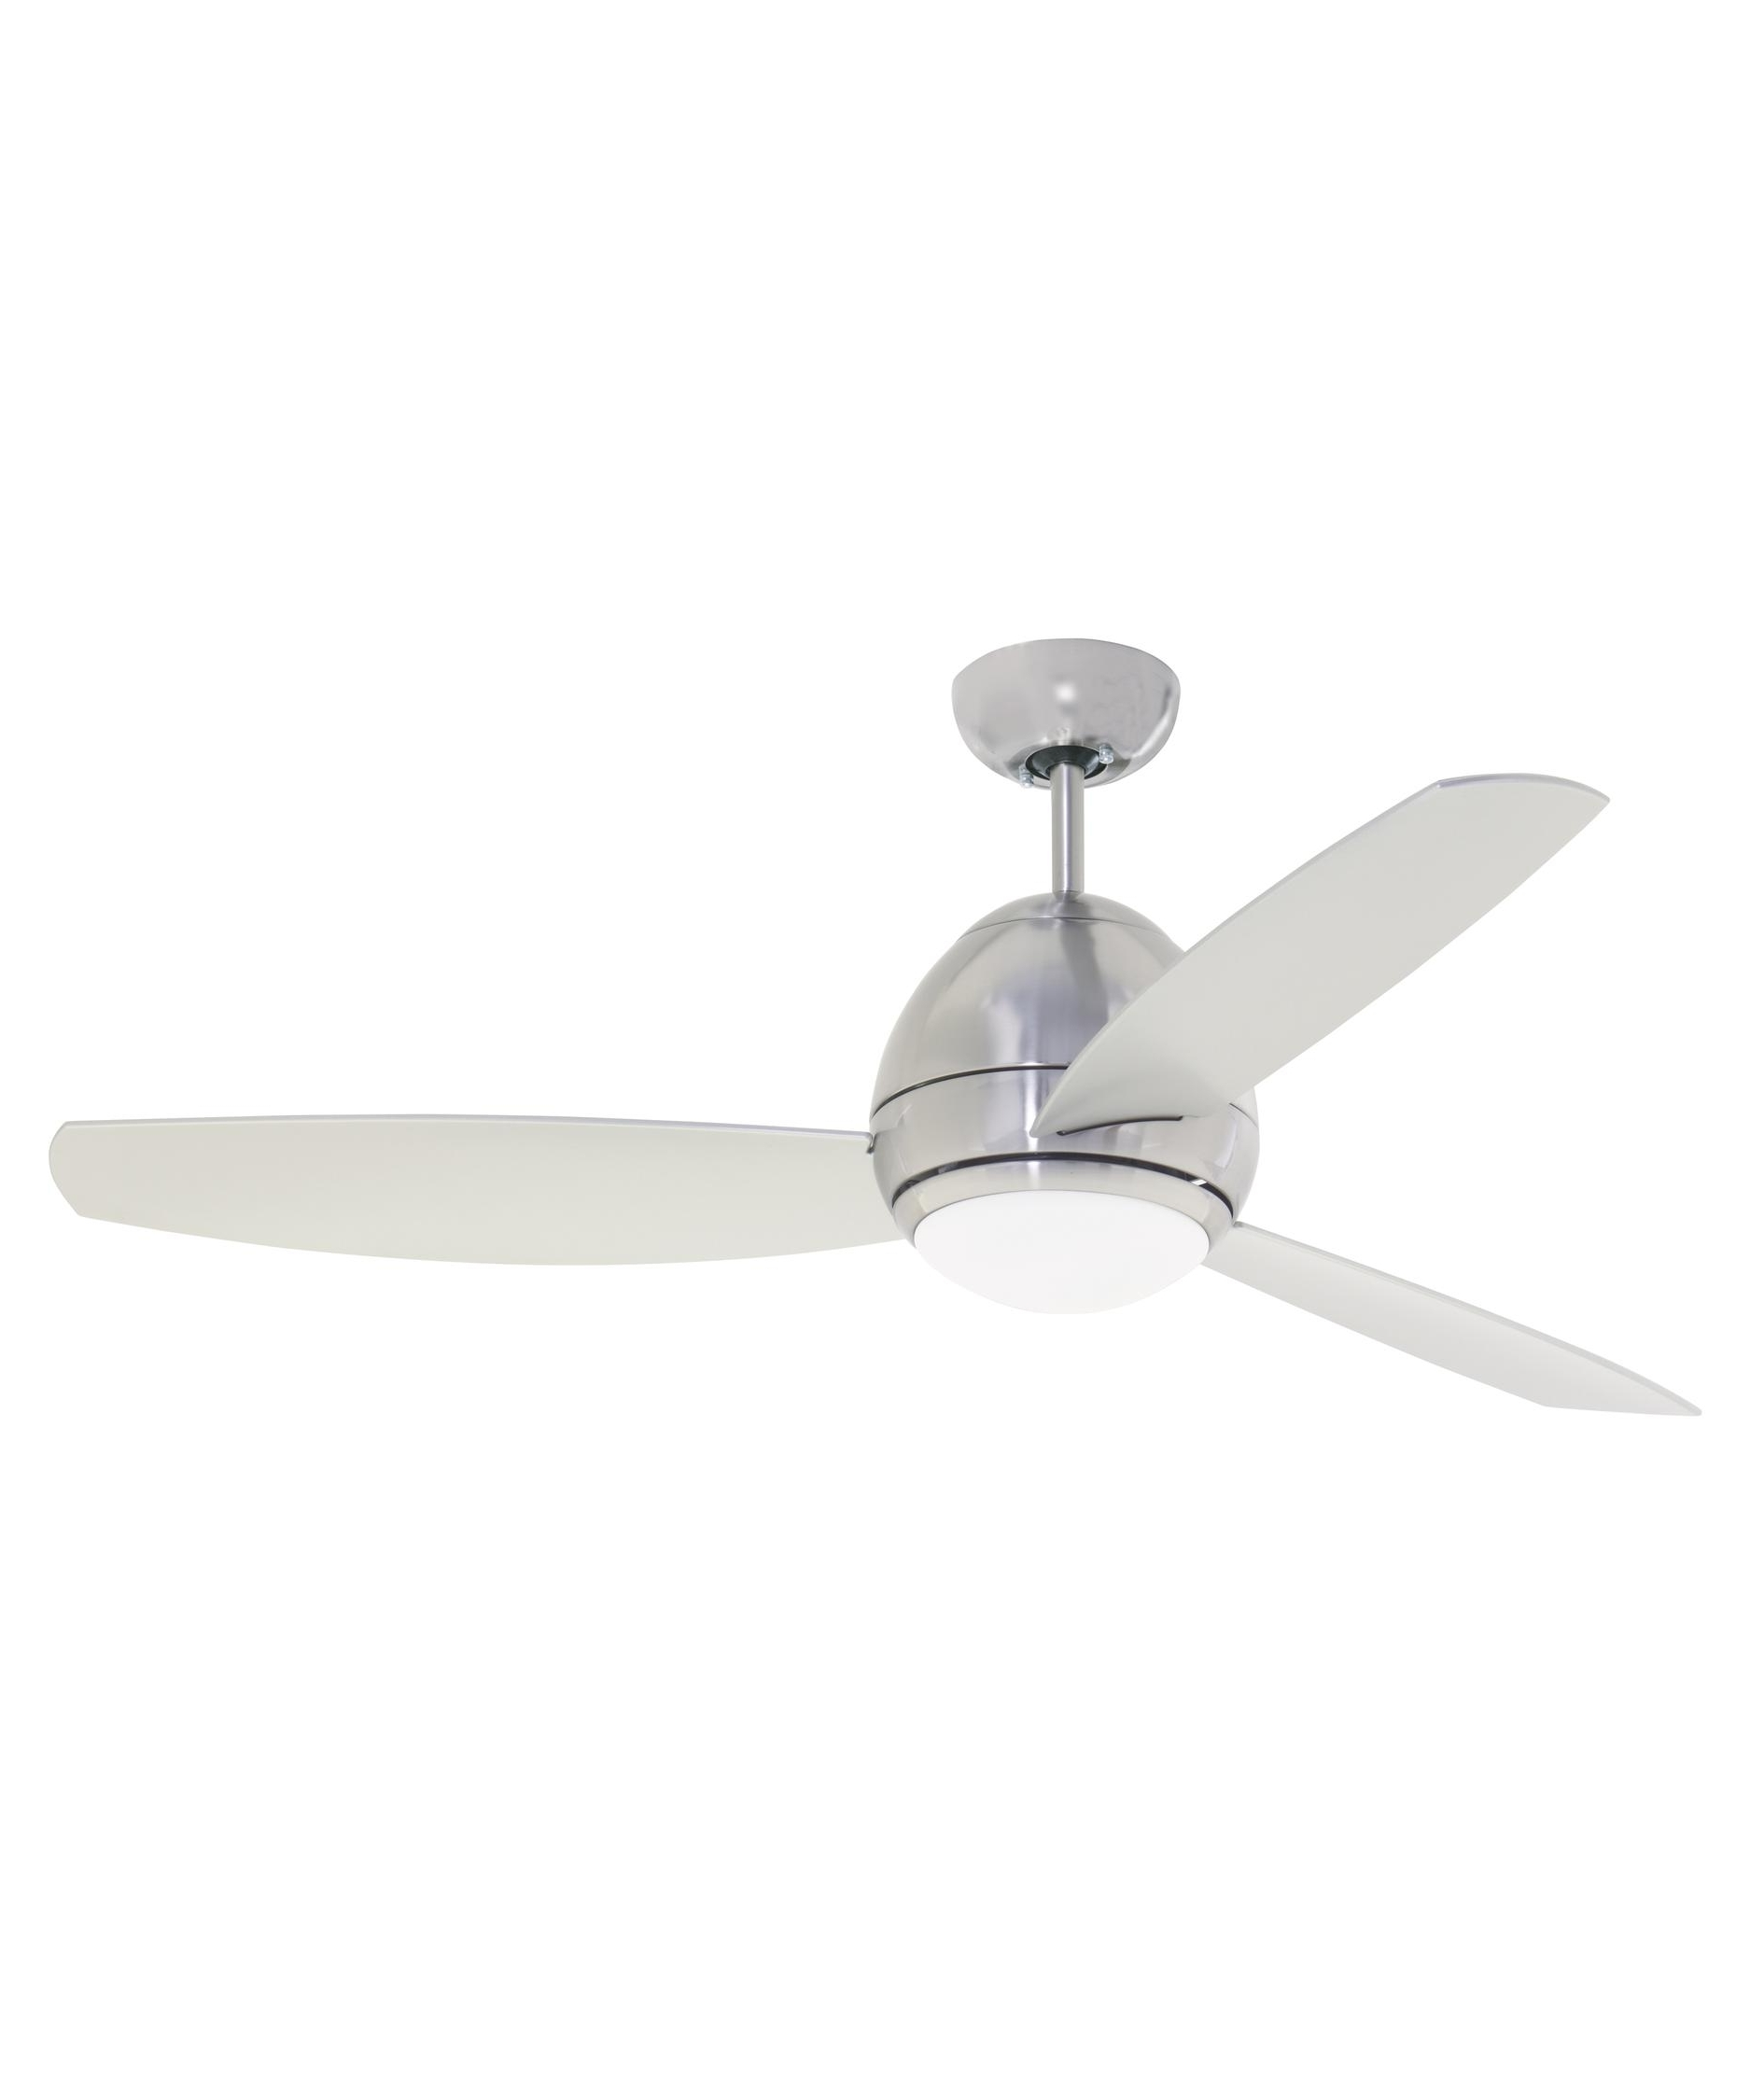 Widely Used Emerson Outdoor Ceiling Fans With Lights With Emerson Cf252 Curva 52 Inch 3 Blade Ceiling Fan (View 9 of 20)